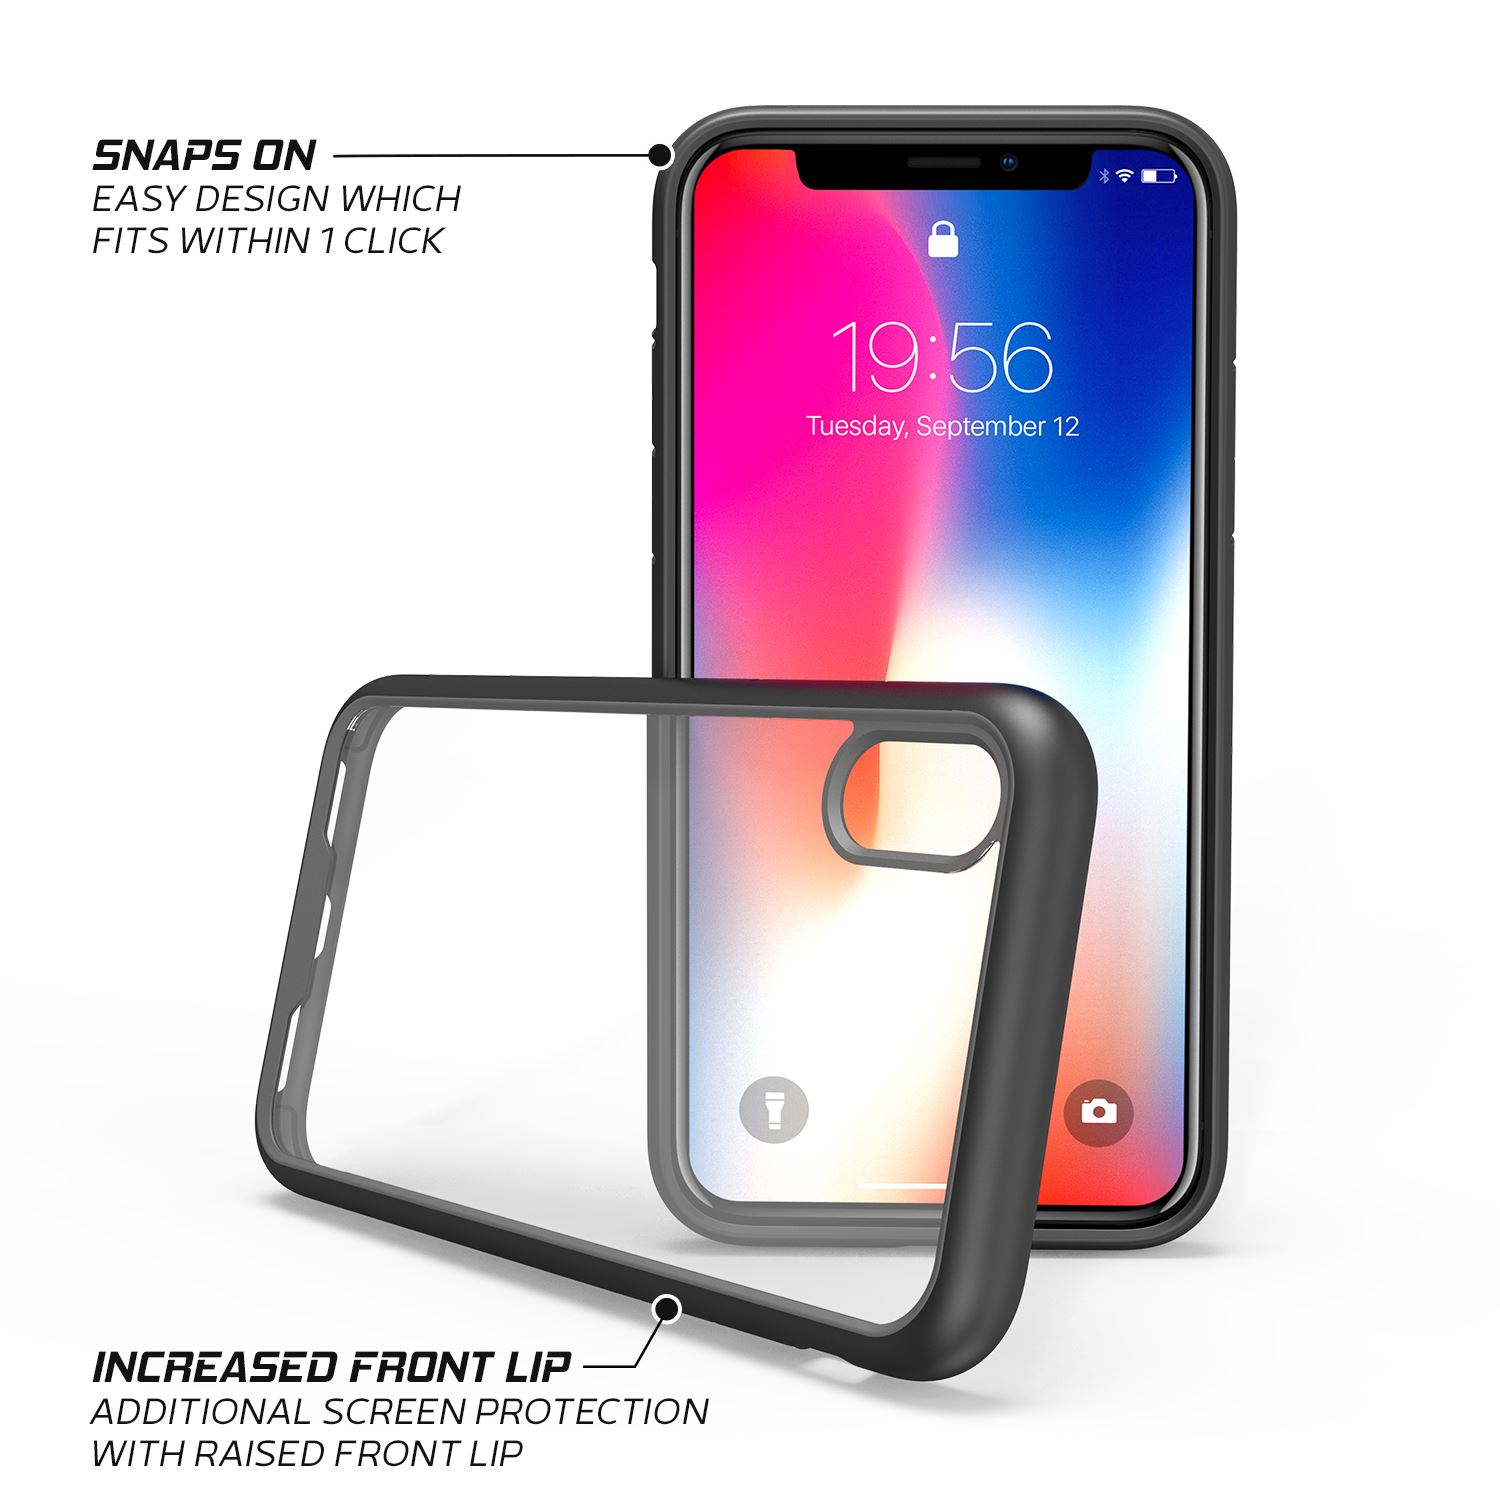 thumbnail 30 - For Apple iPhone XR Xs Max X 8 7 Plus 6 Se 2020 Case Cover Clear Shockproof Thin